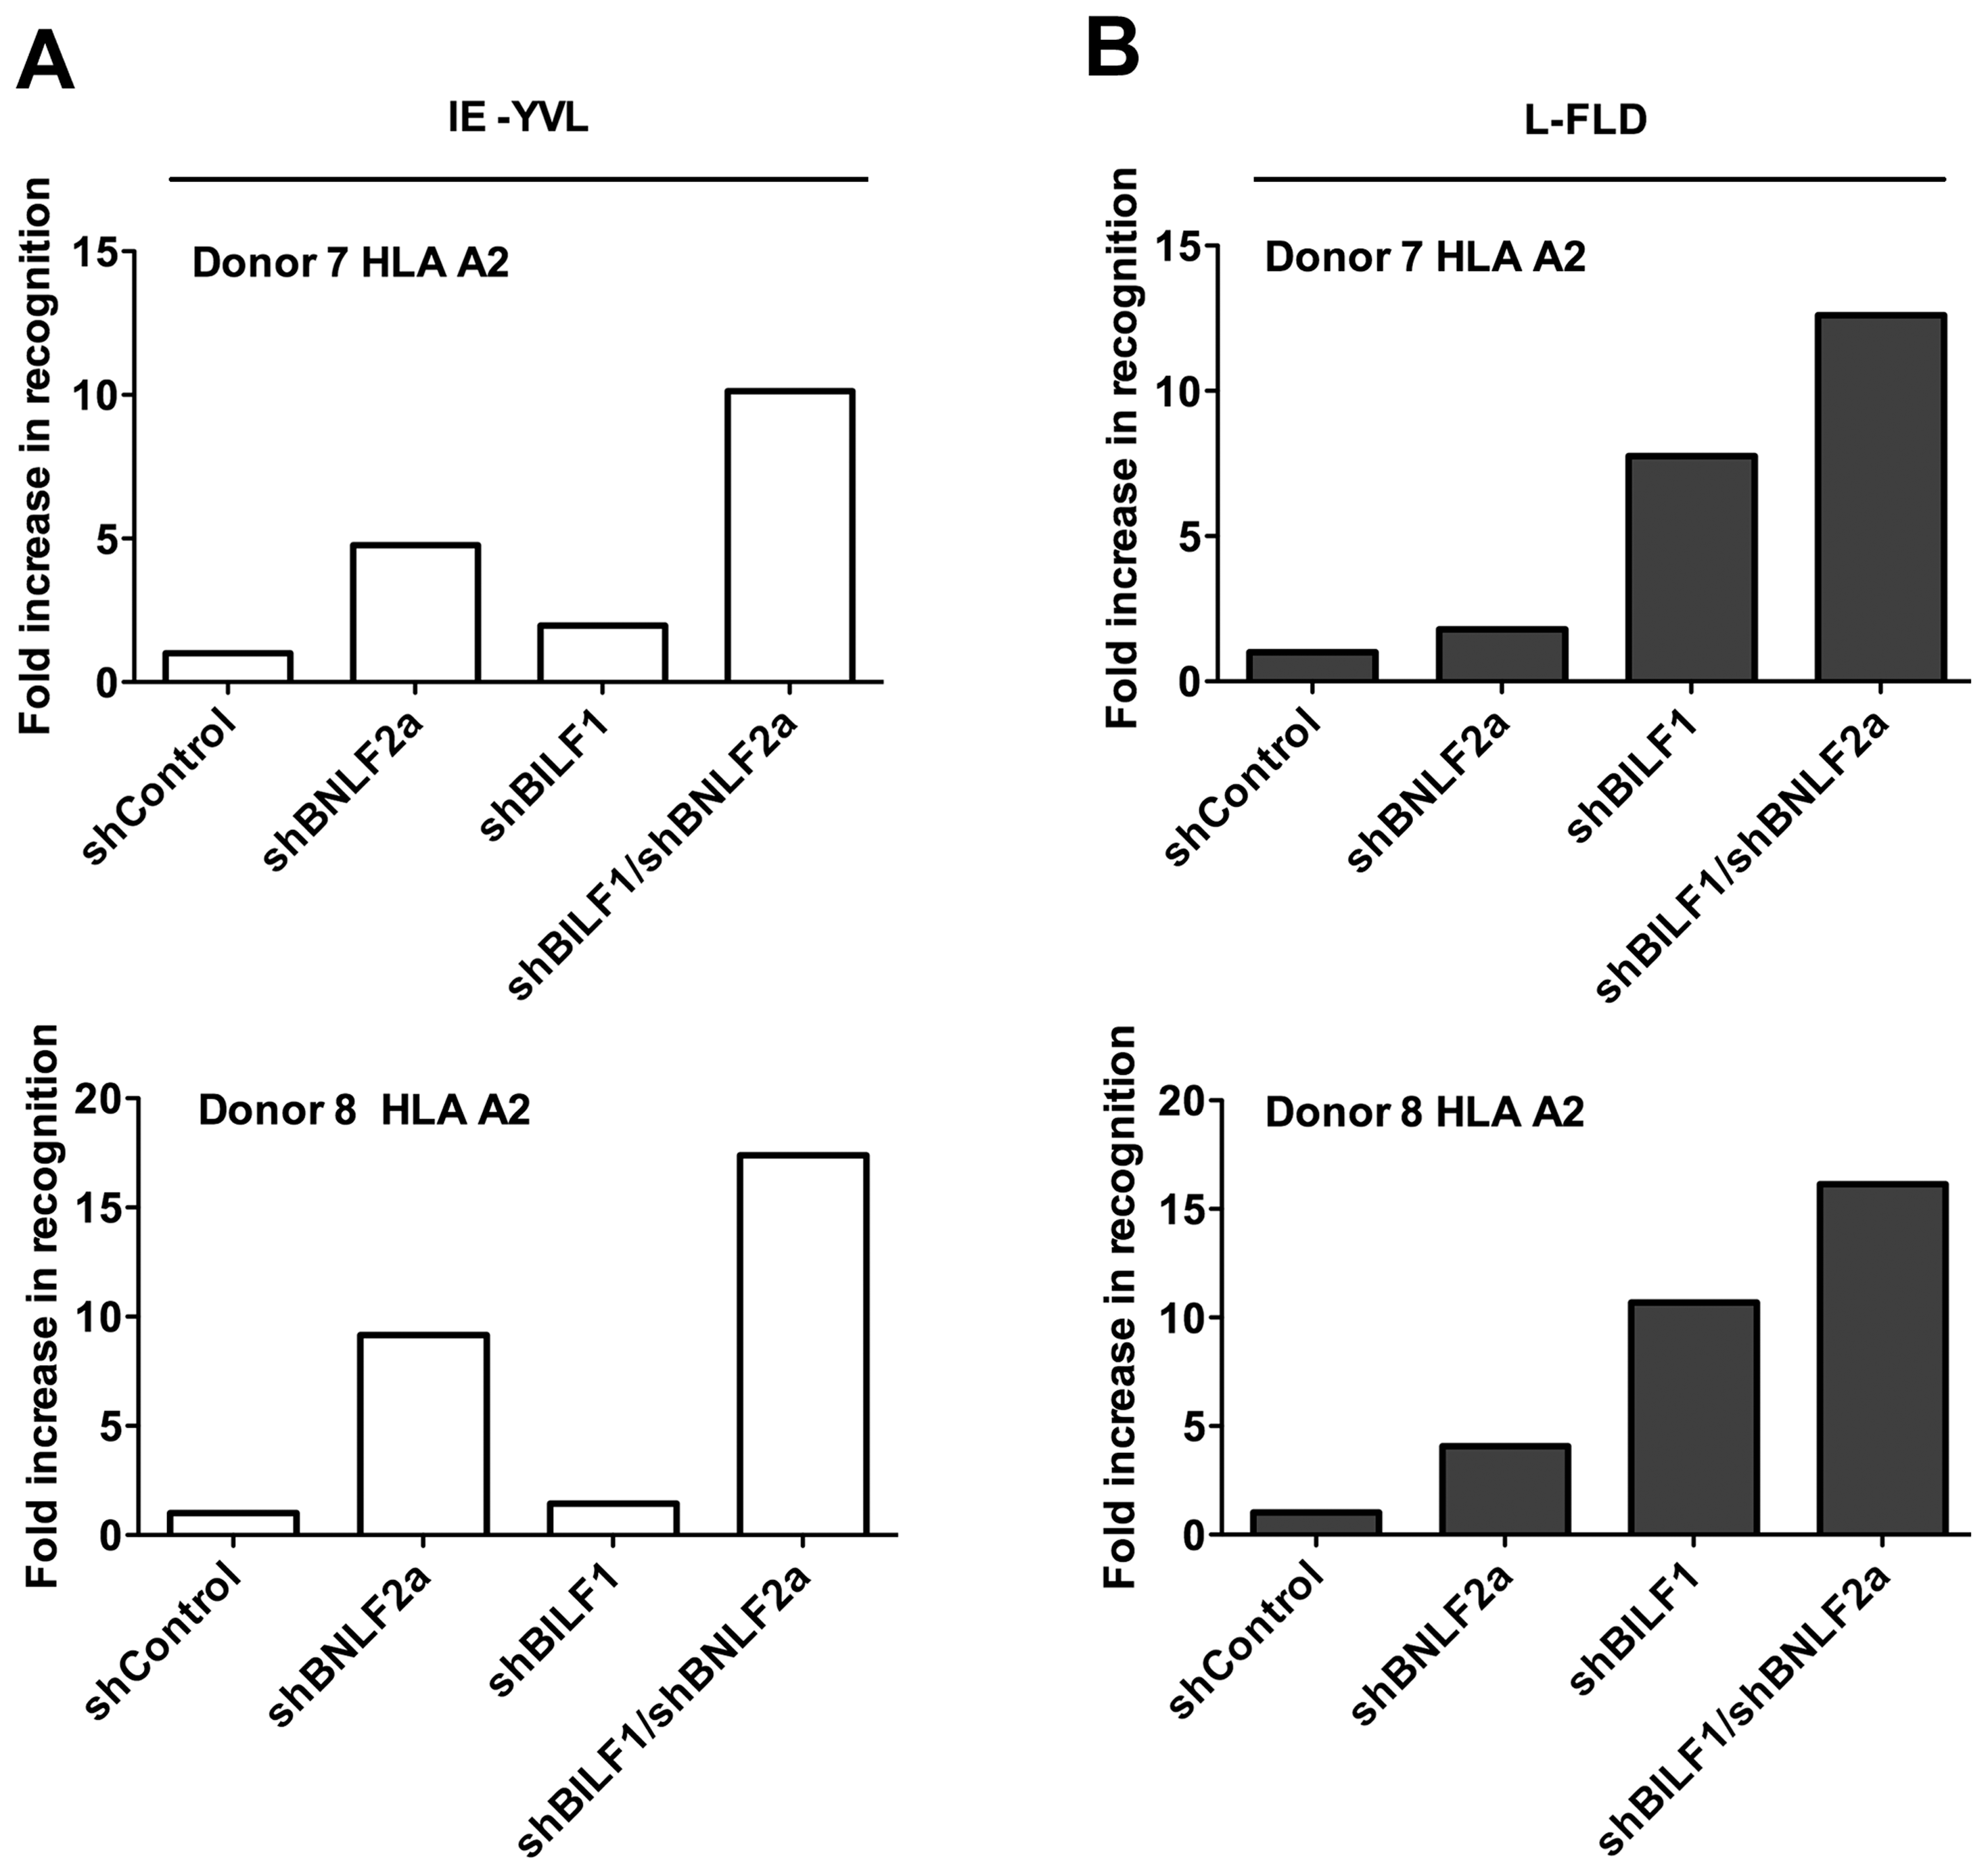 Relative recognition by IE- and L- specific, HLA-A2 restricted CD8<sup>+</sup> T cell clones of LCLs lacking both BNLF2a and BILF1 expression.